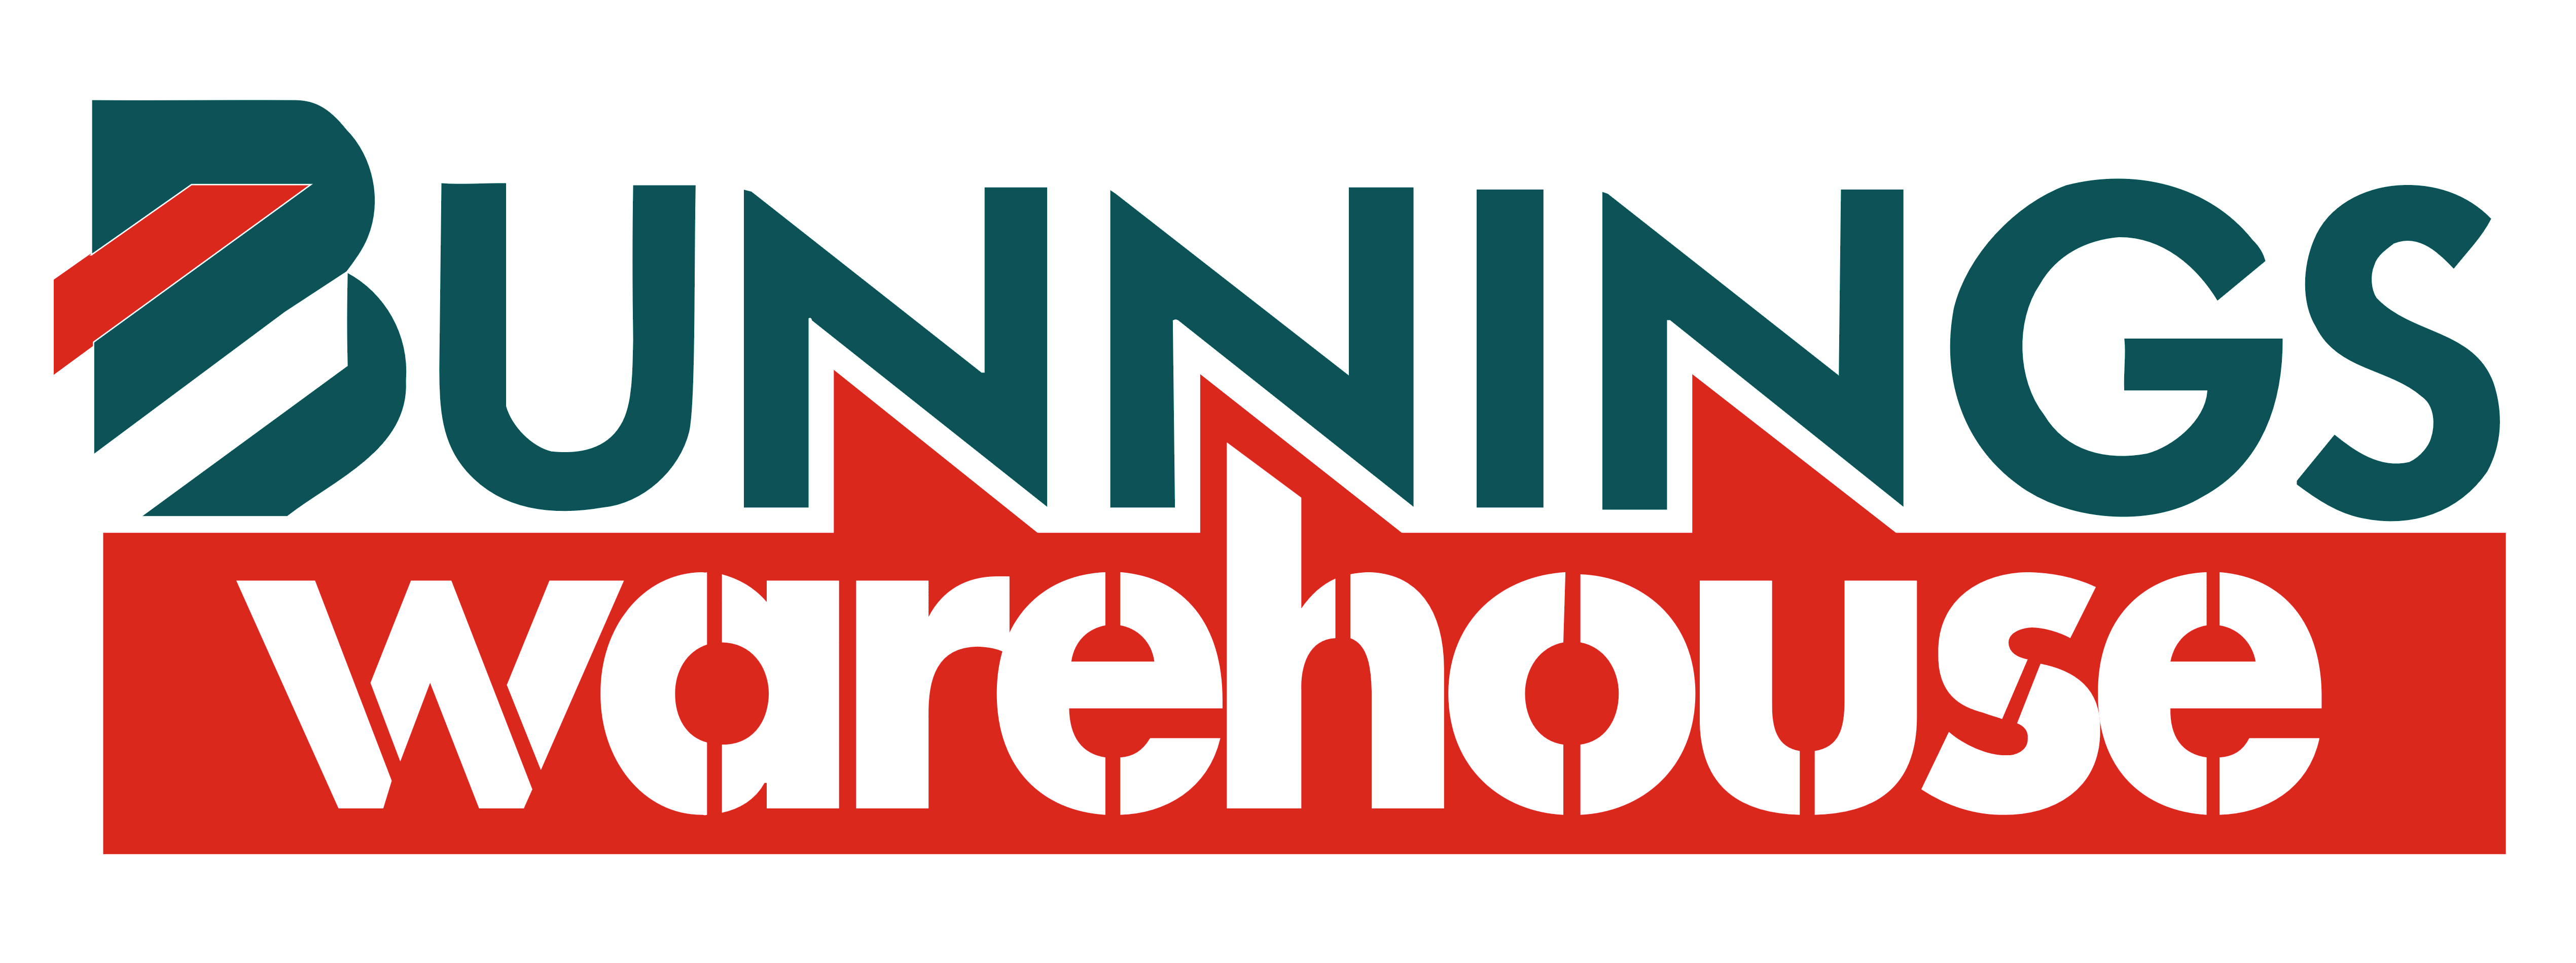 Bunnings_Warehouse_logo